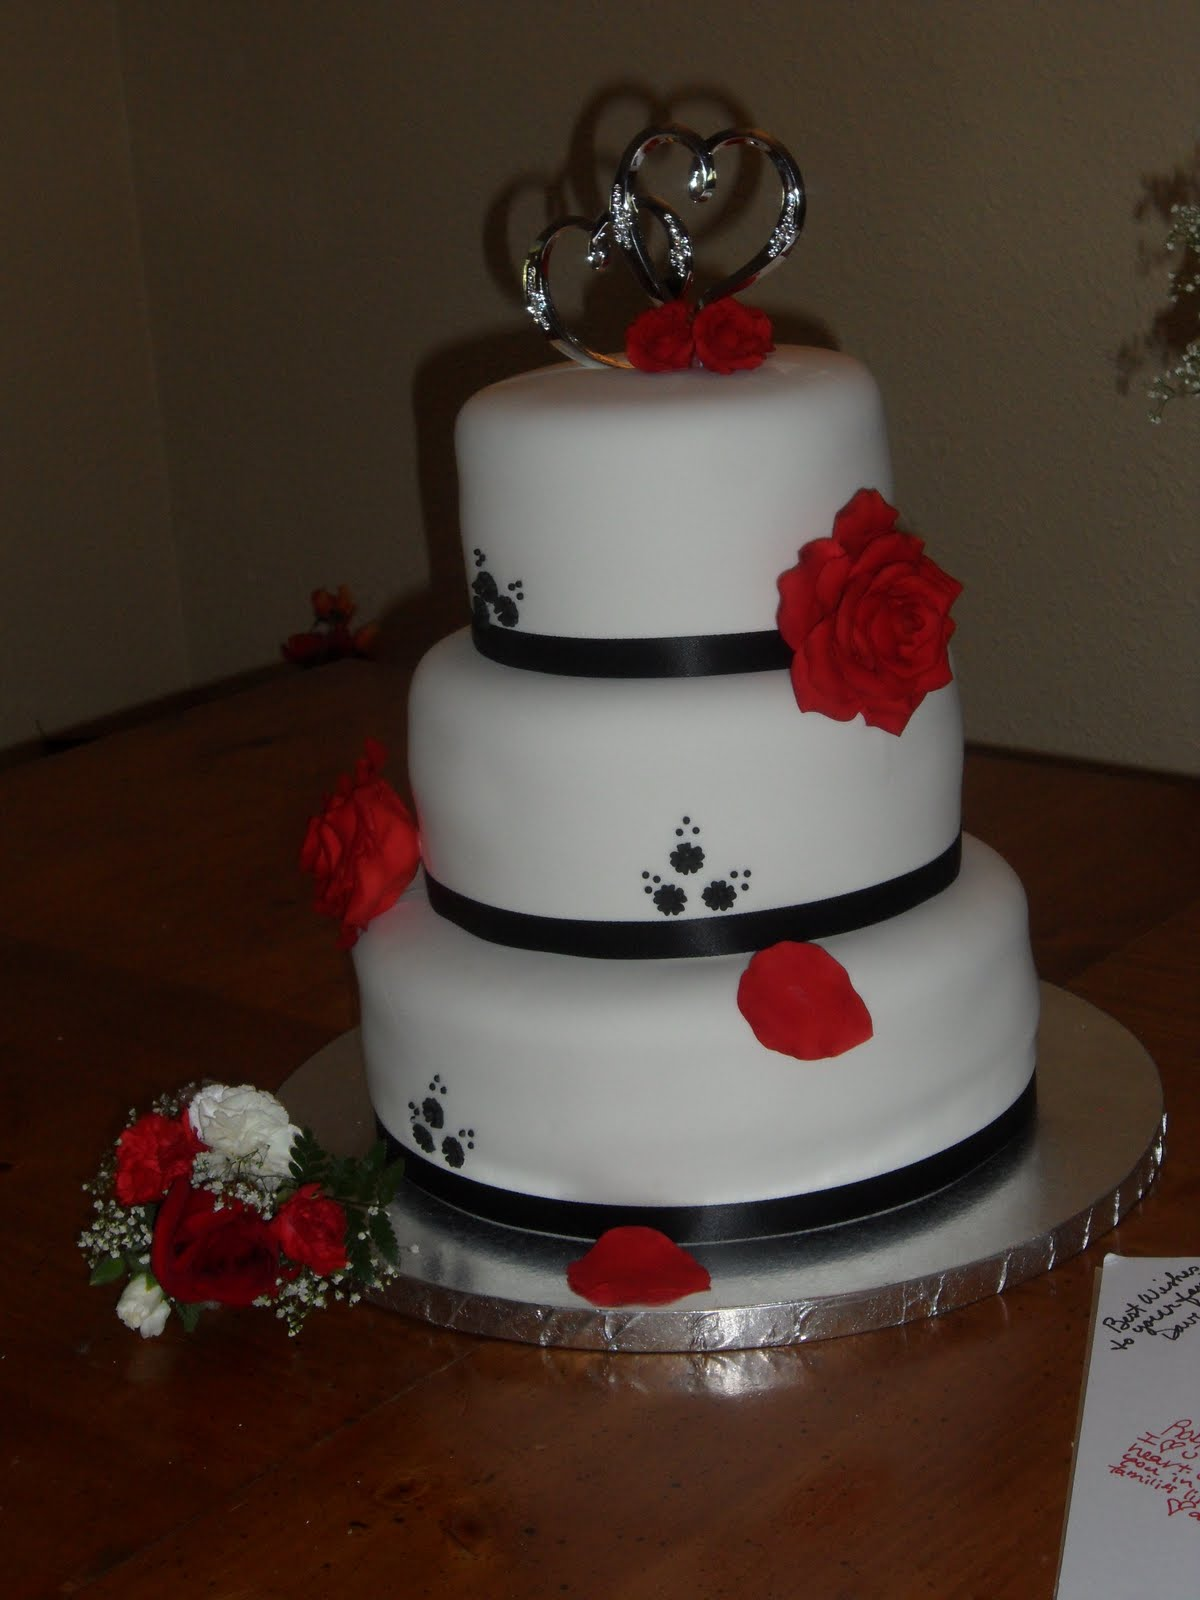 sugar pants cake blog white black and red wedding cake. Black Bedroom Furniture Sets. Home Design Ideas